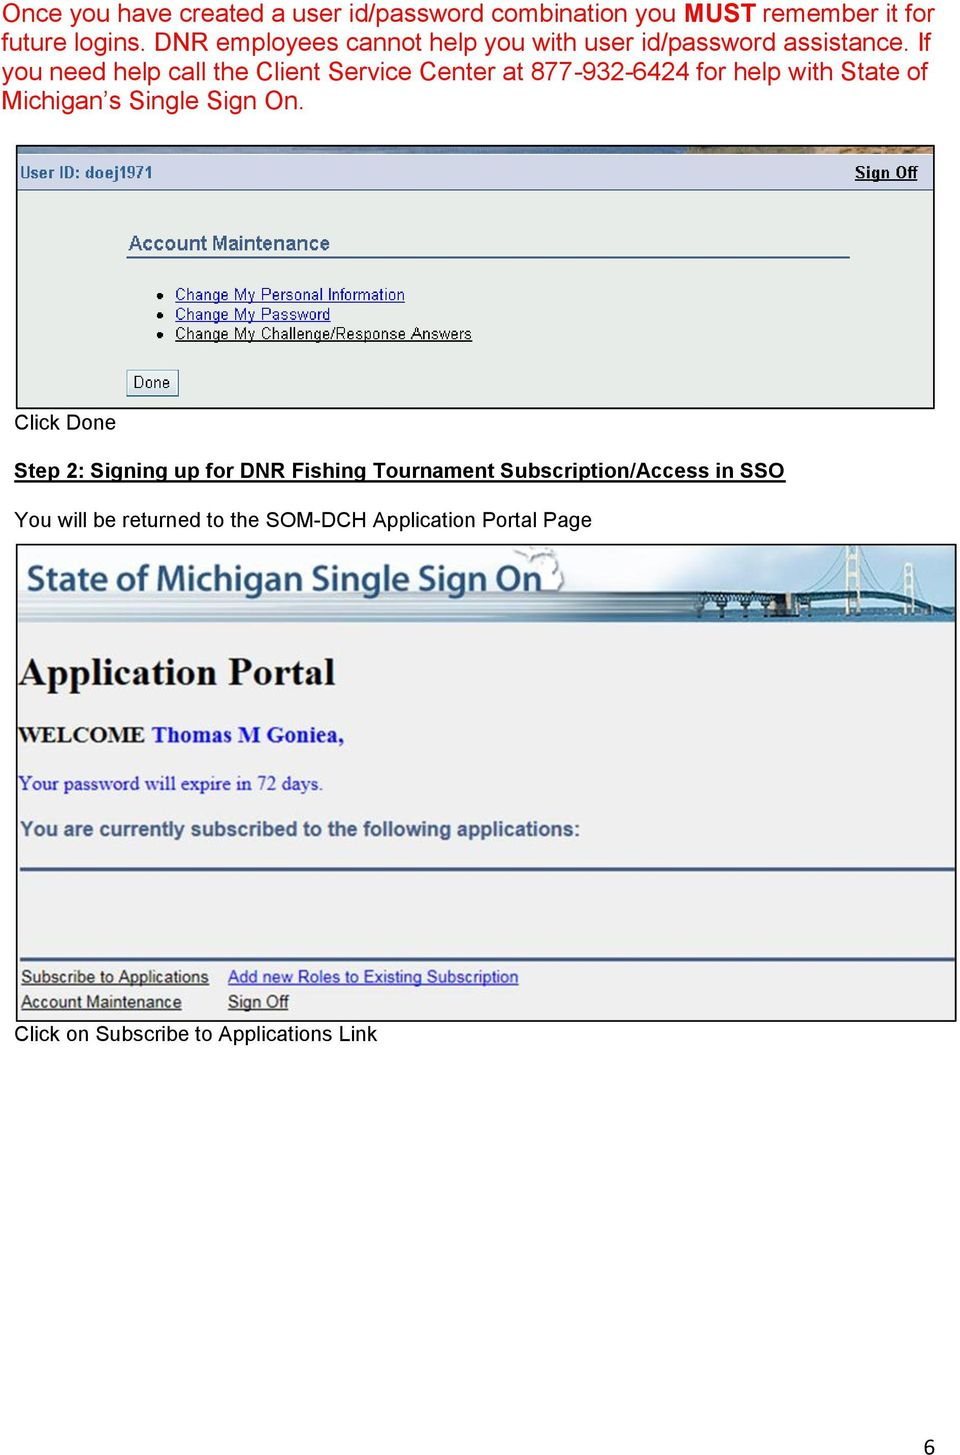 If you need help call the Client Service Center at 877-932-6424 for help with State of Michigan s Single Sign On.